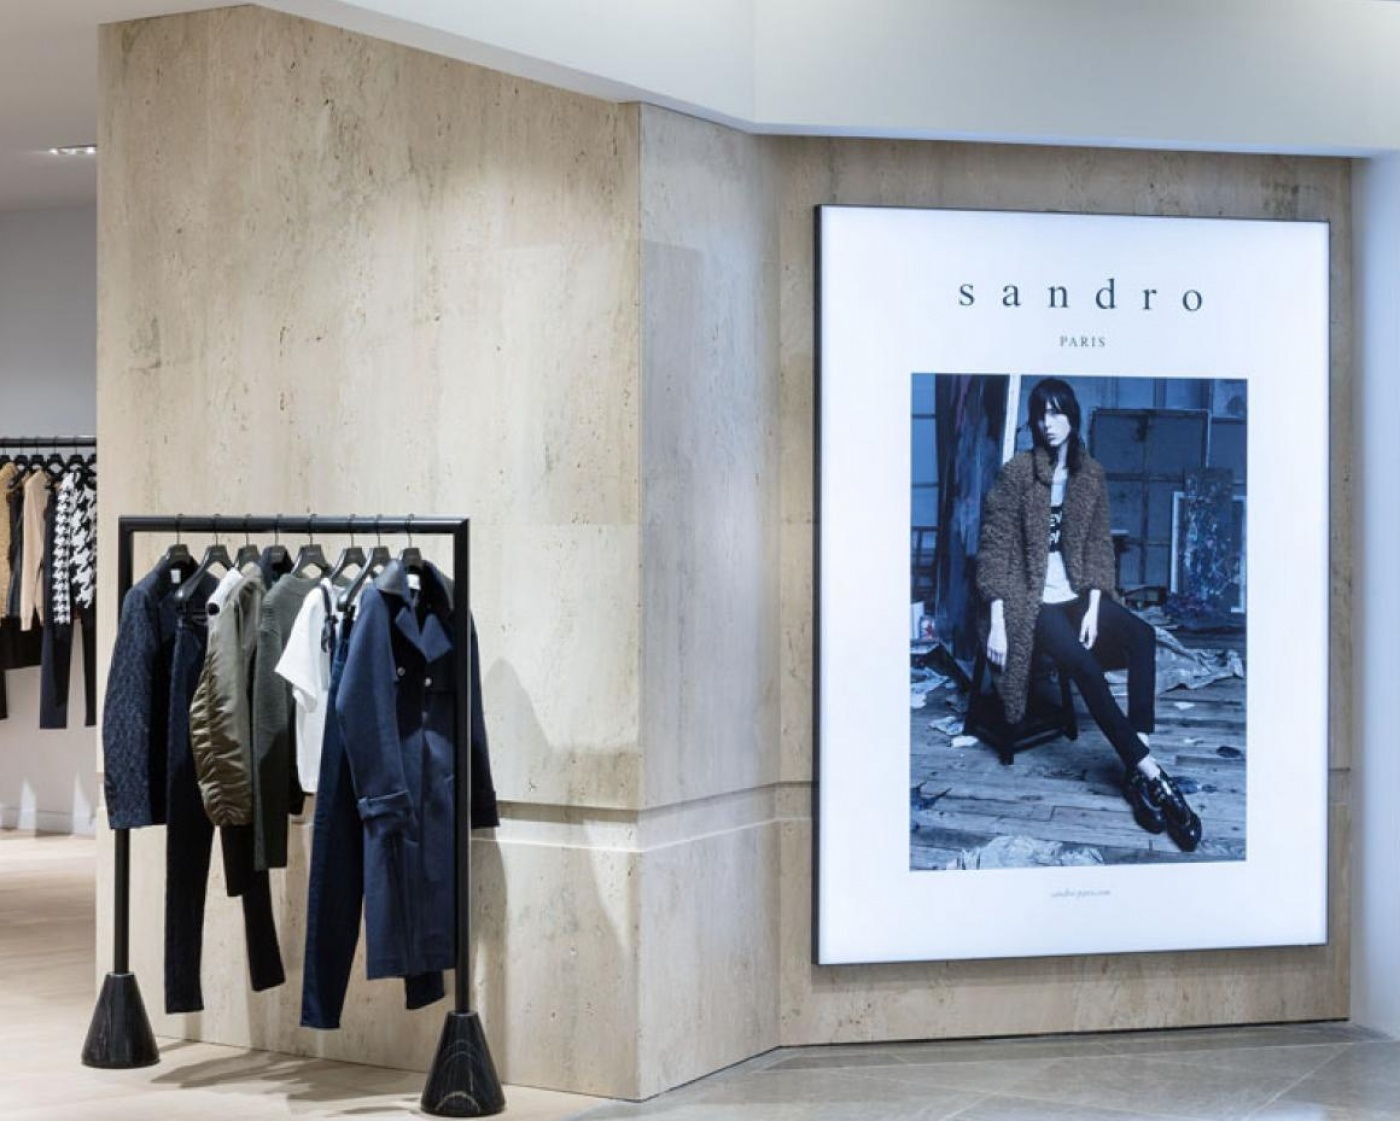 Travertino Navona, Sandro shop, Printemps Haussmann Paris